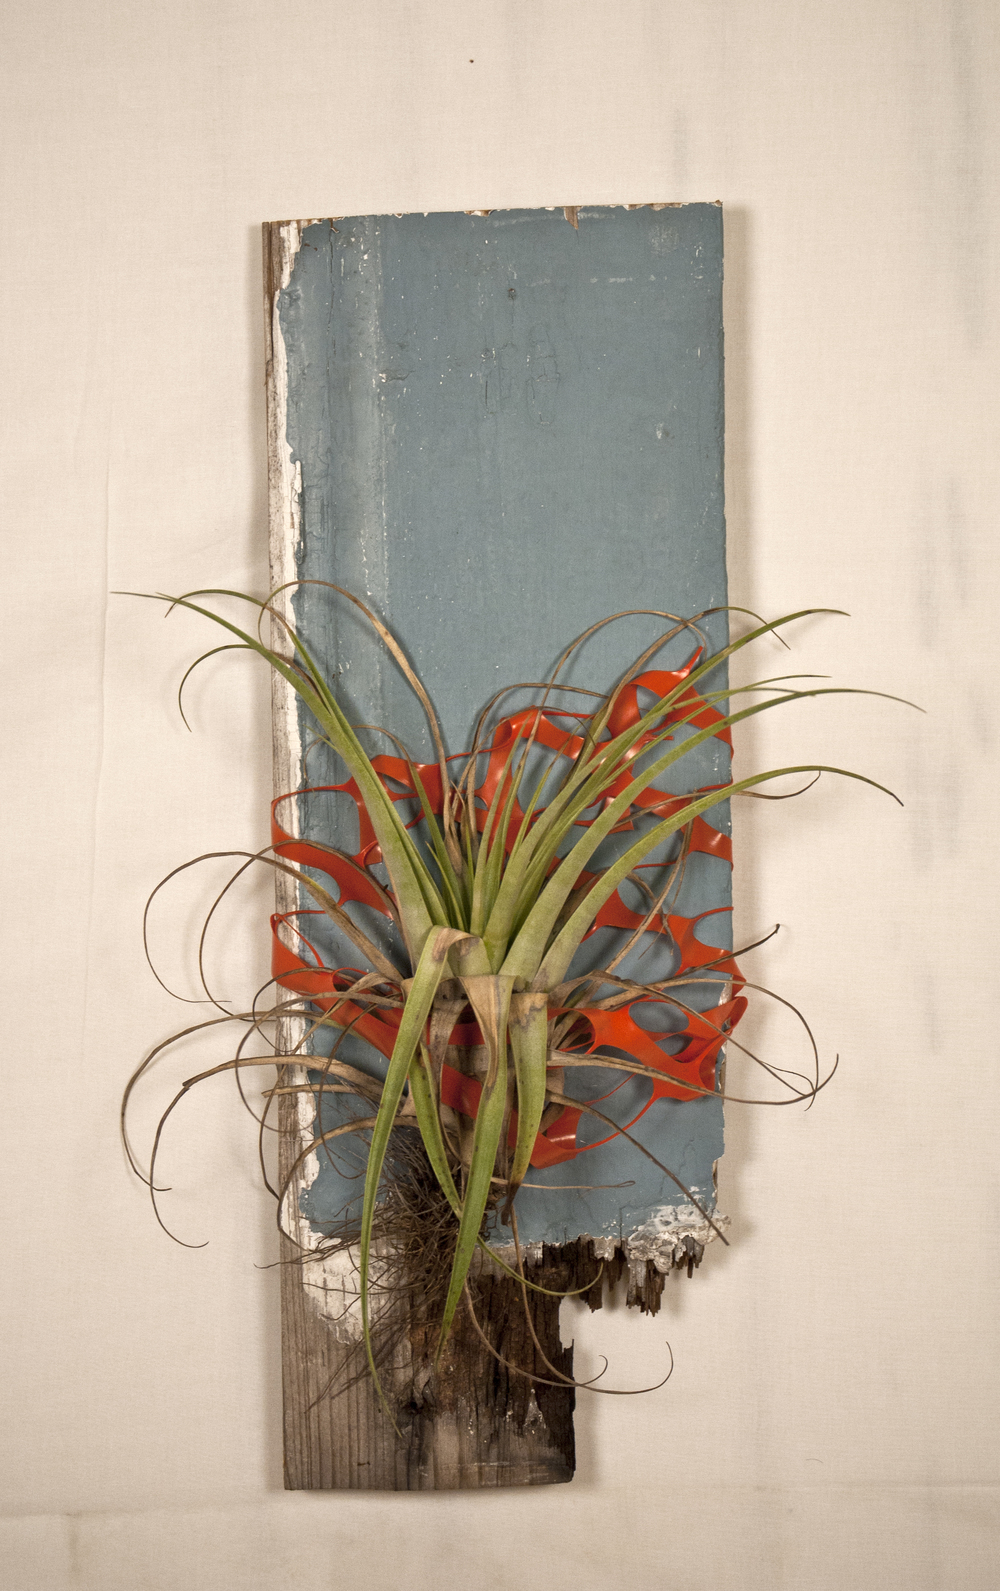 The Neighbor   Wood, orange plastic fence, epiphytic bromeliad (tillandsia fasciculata), water.